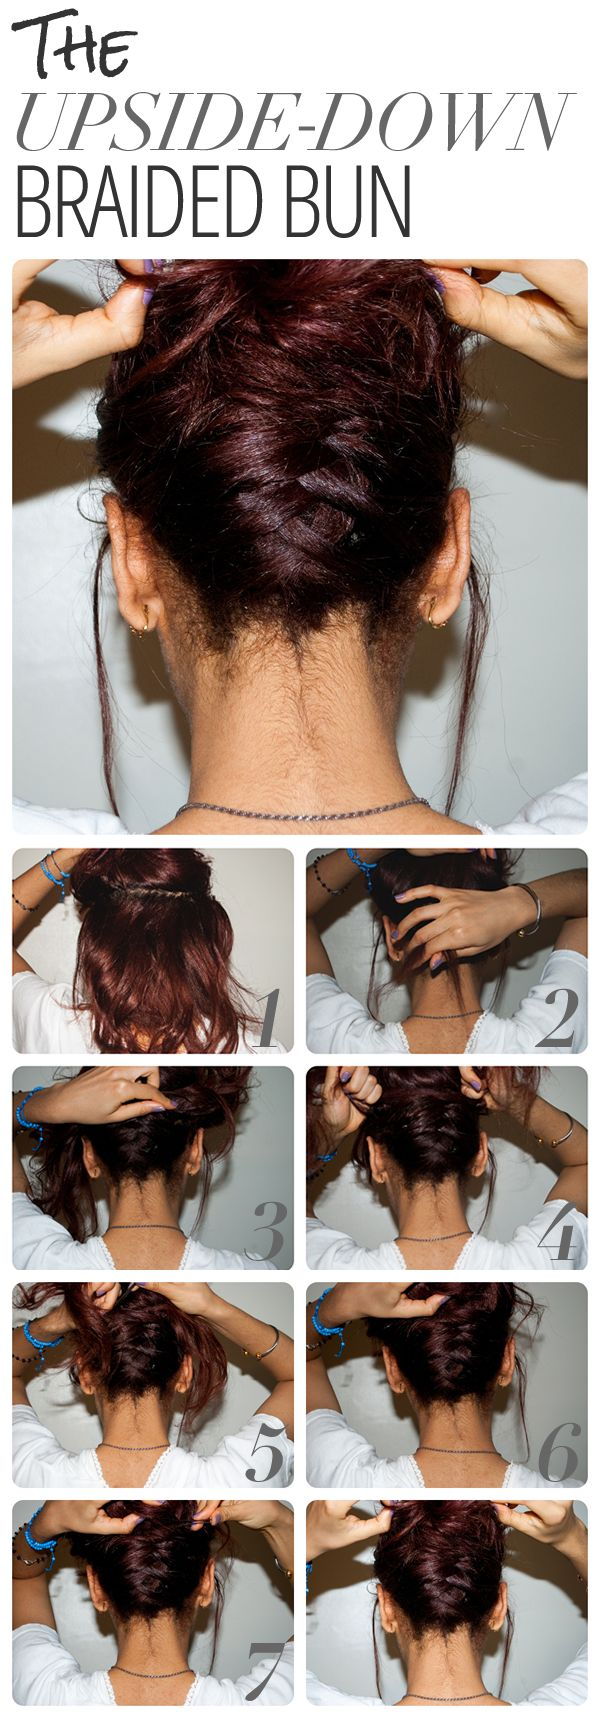 Upside Down Braided Bun. Like the color too